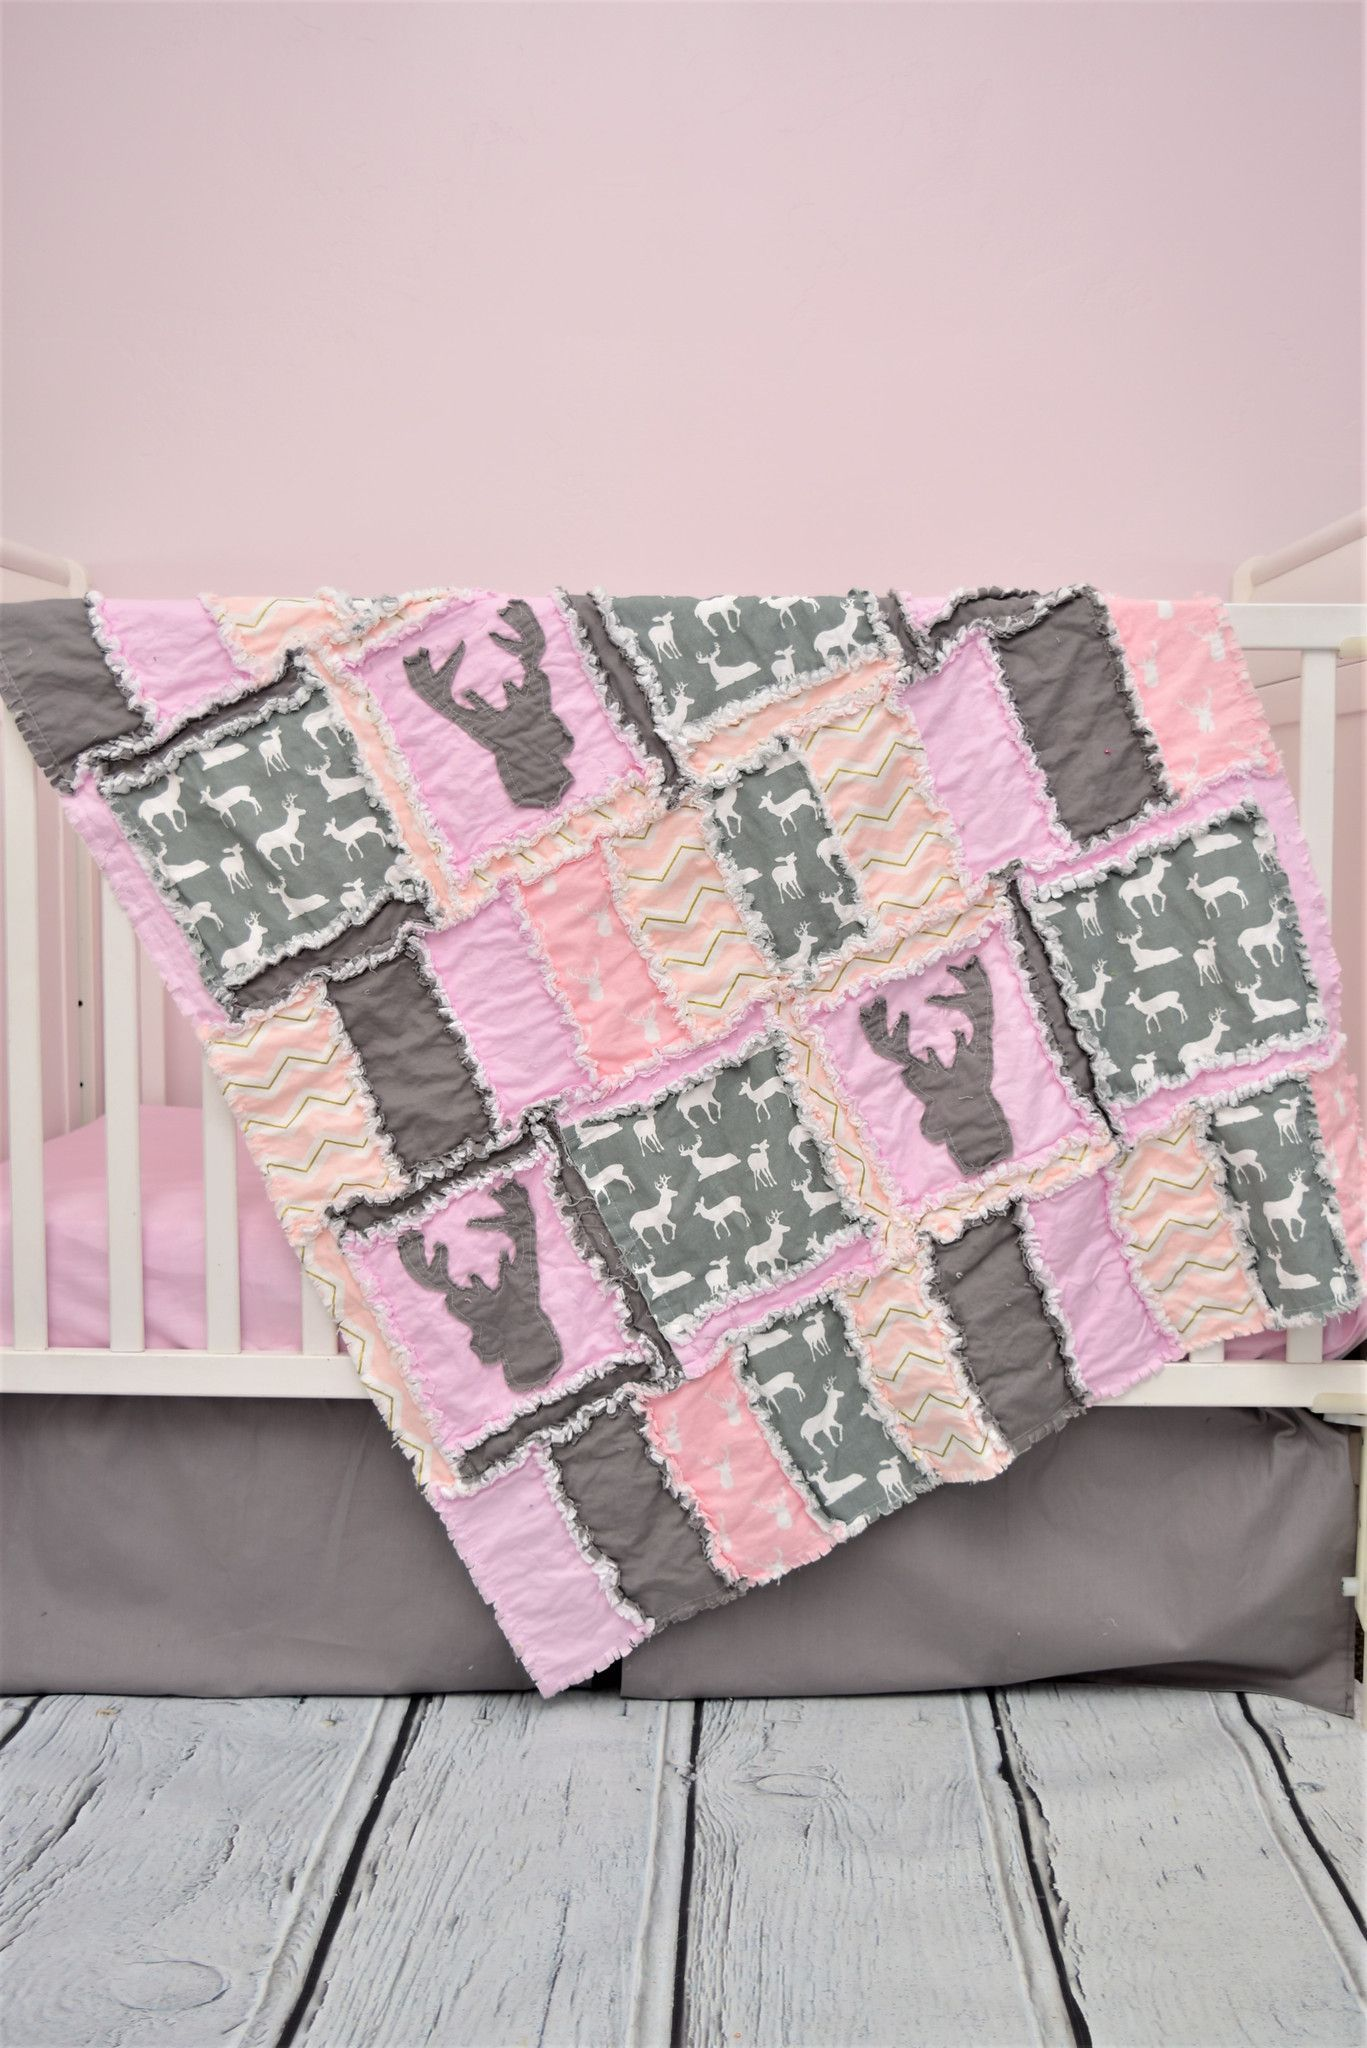 Baby girl crib bedding lady hunter style with deer heads appliques made in  woodland crib bedding